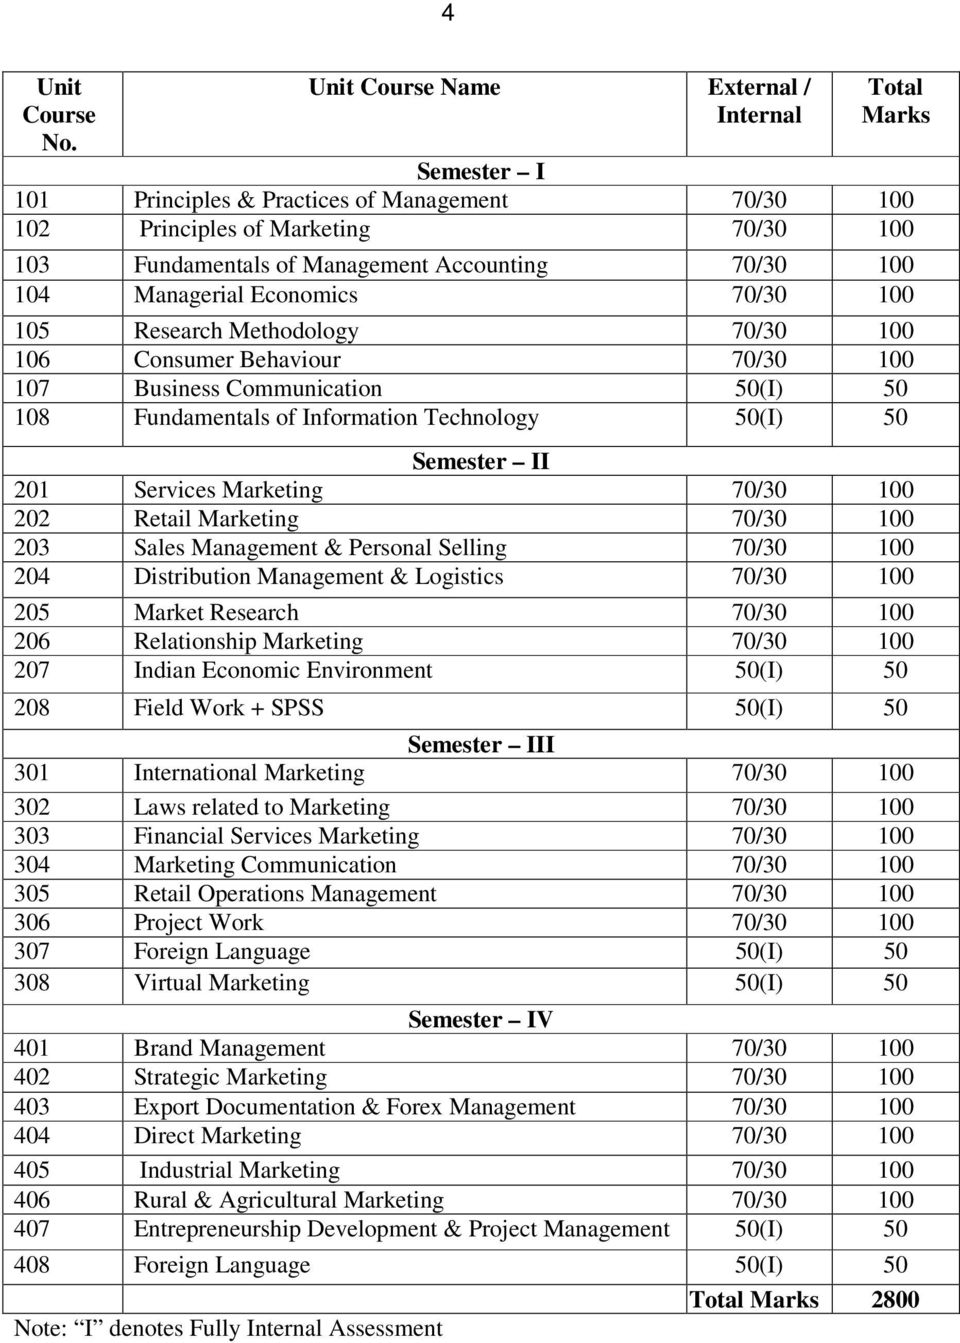 100 104 Managerial Economics 70/30 100 105 Research Methodology 70/30 100 106 Consumer Behaviour 70/30 100 107 Business Communication 50(I) 50 108 Fundamentals of Information Technology 50(I) 50